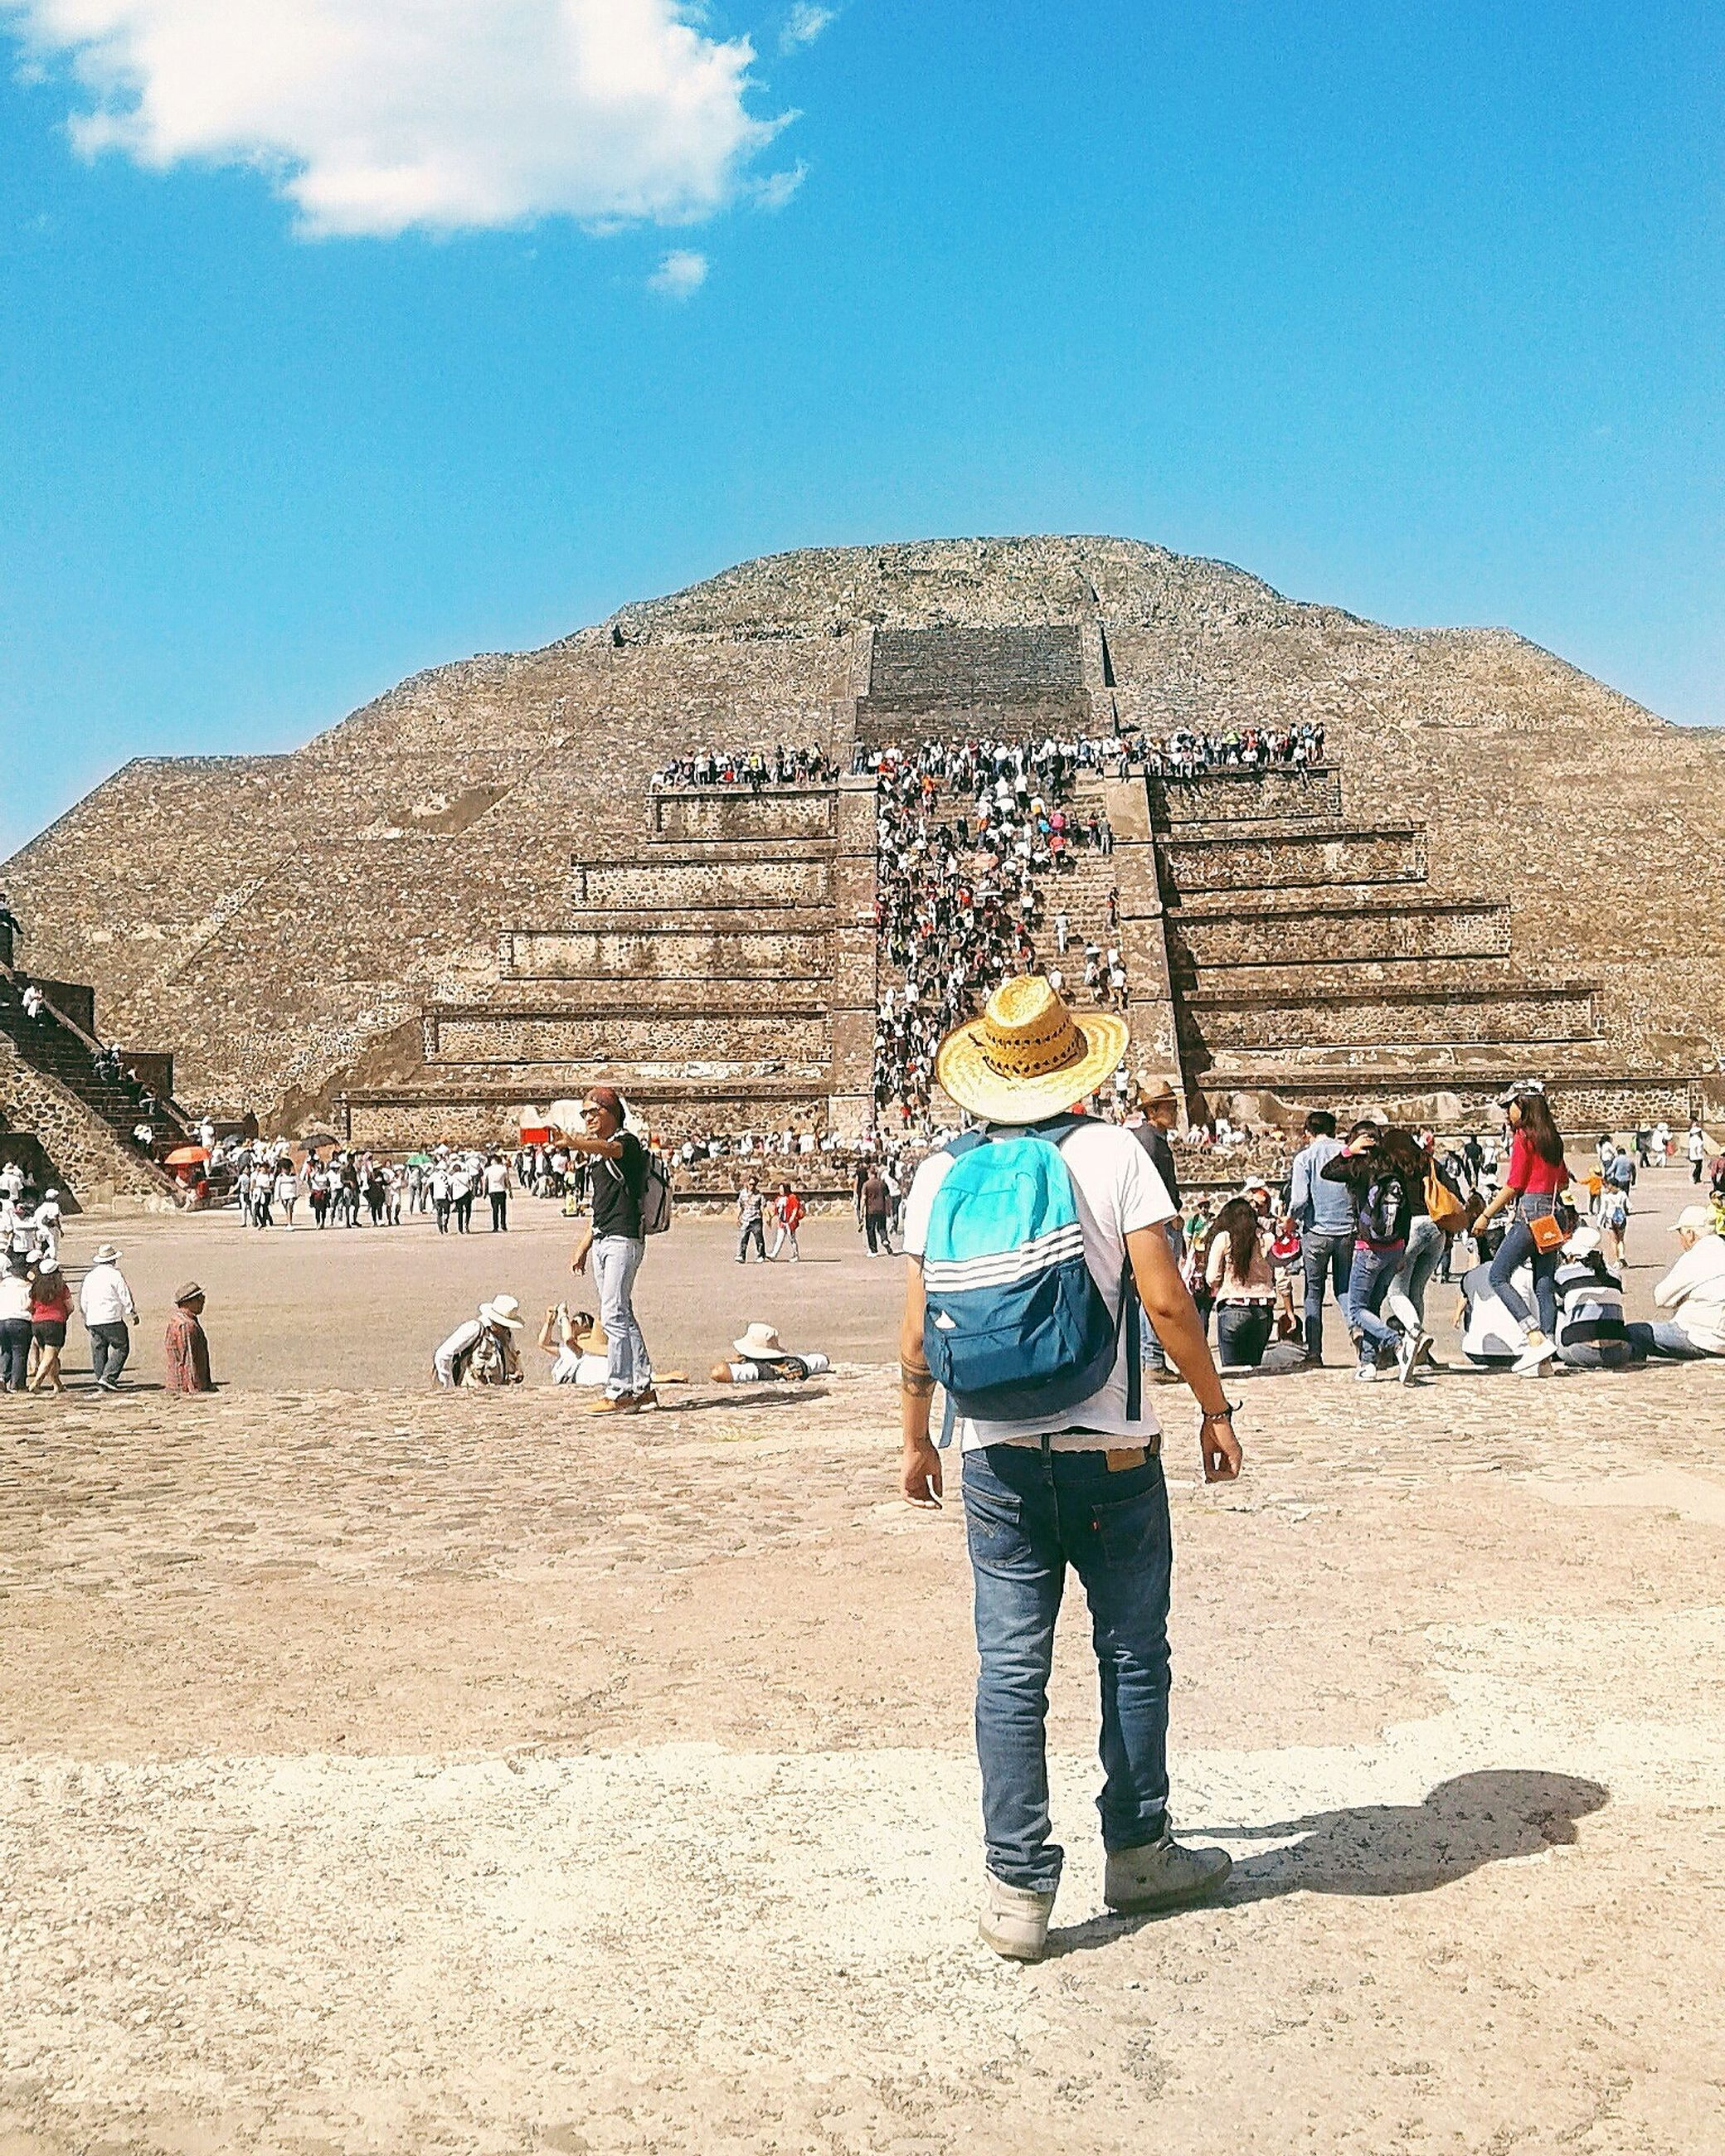 large group of people, real people, tourism, travel destinations, day, leisure activity, history, pyramid, sky, sunlight, lifestyles, ancient, men, outdoors, casual clothing, built structure, nature, travel, vacations, women, architecture, cloud - sky, ancient civilization, old ruin, mountain, blue, arid climate, beauty in nature, people